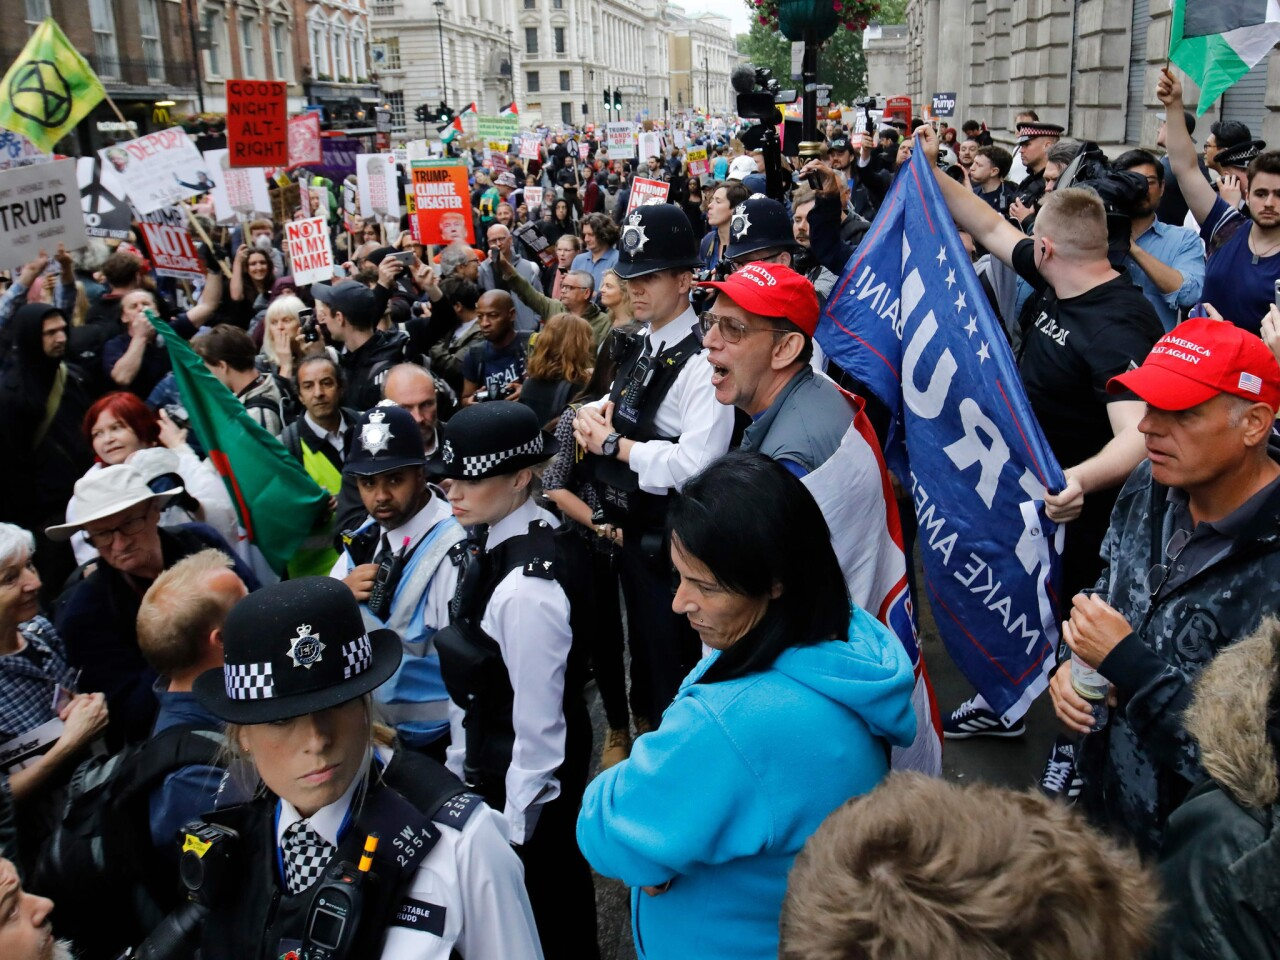 Protesters take to the street in London over Trump visit